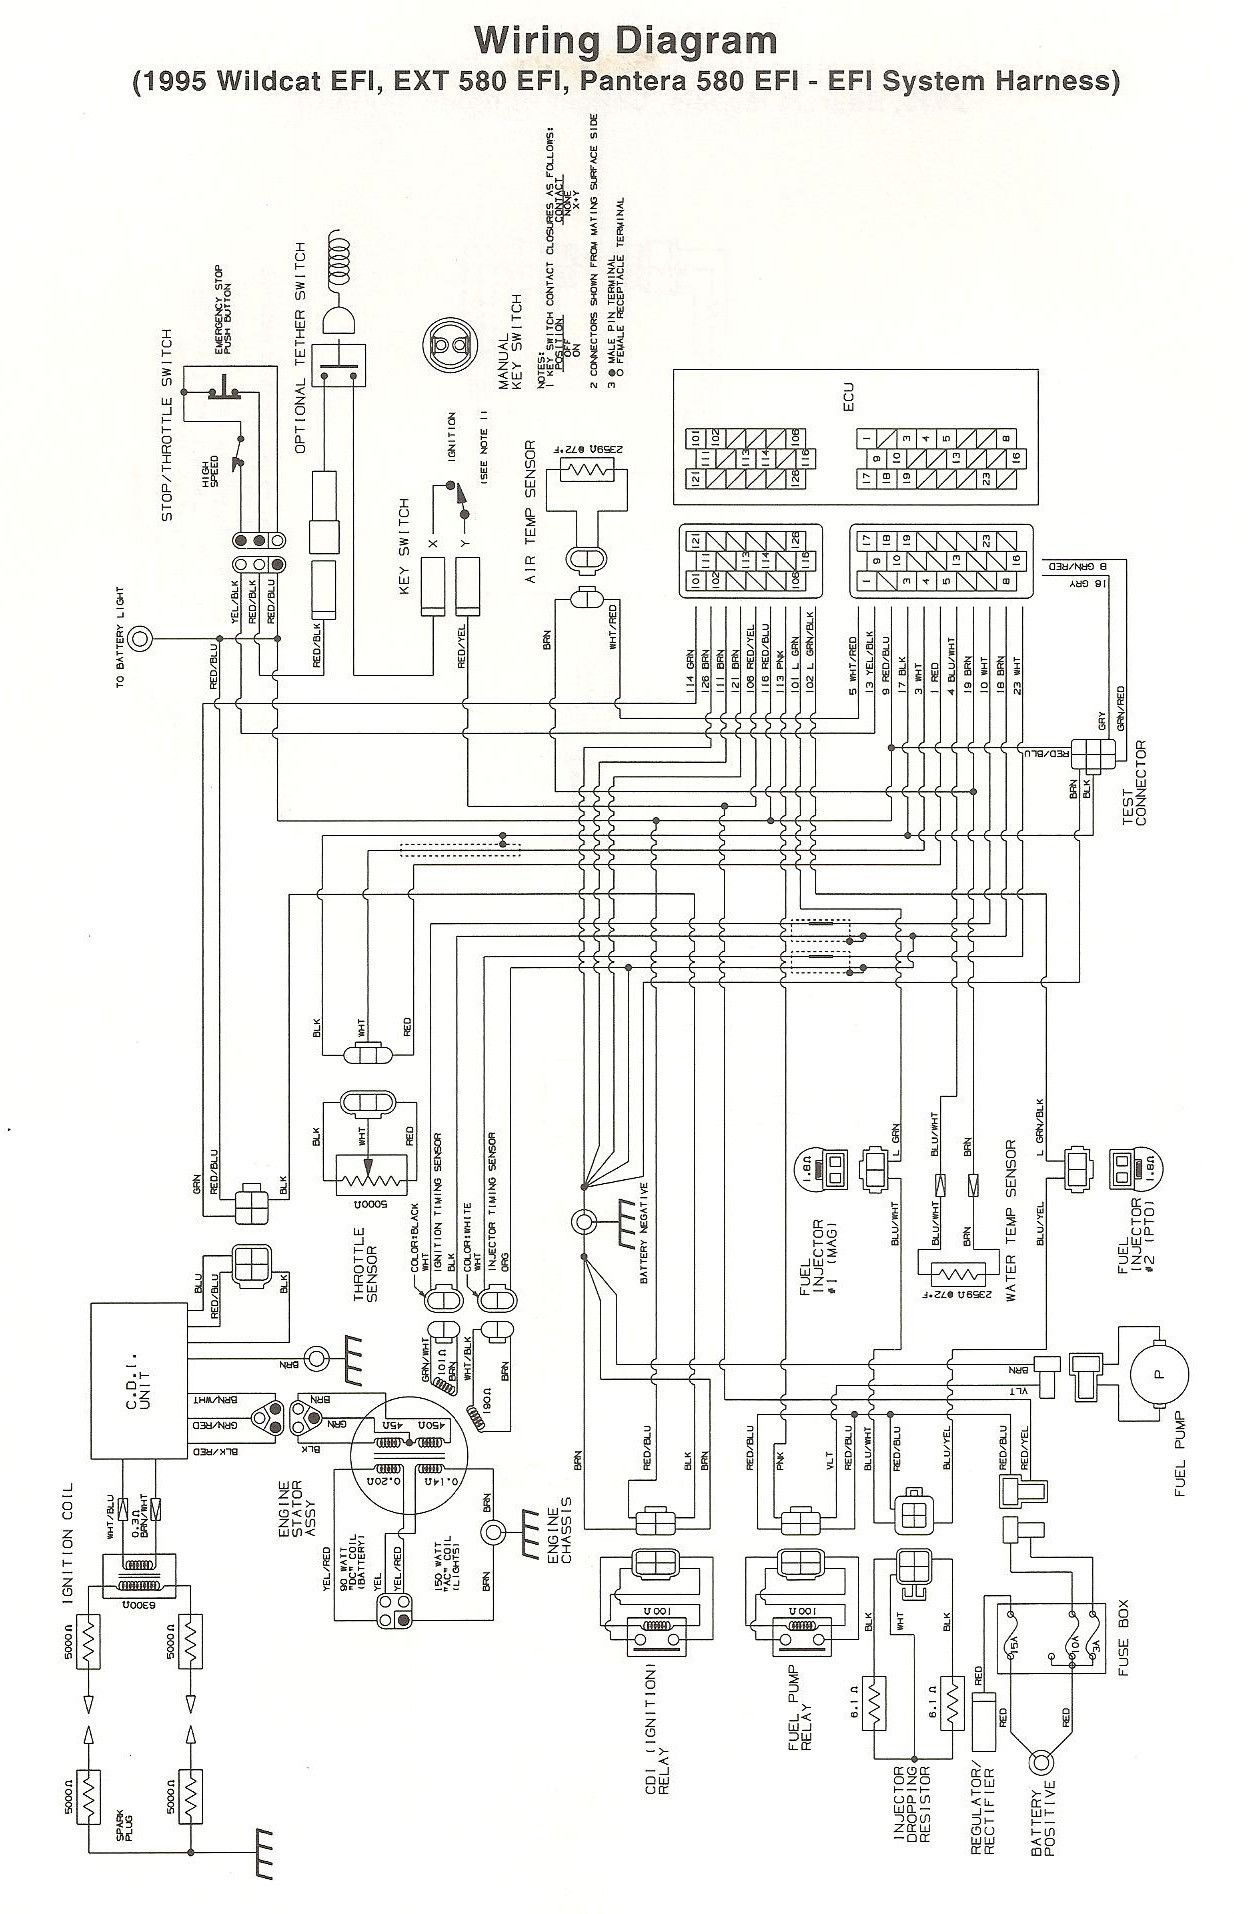 yamaha wiring diagram heater yamaha grizzly 660 wiring diagram | free wiring diagram